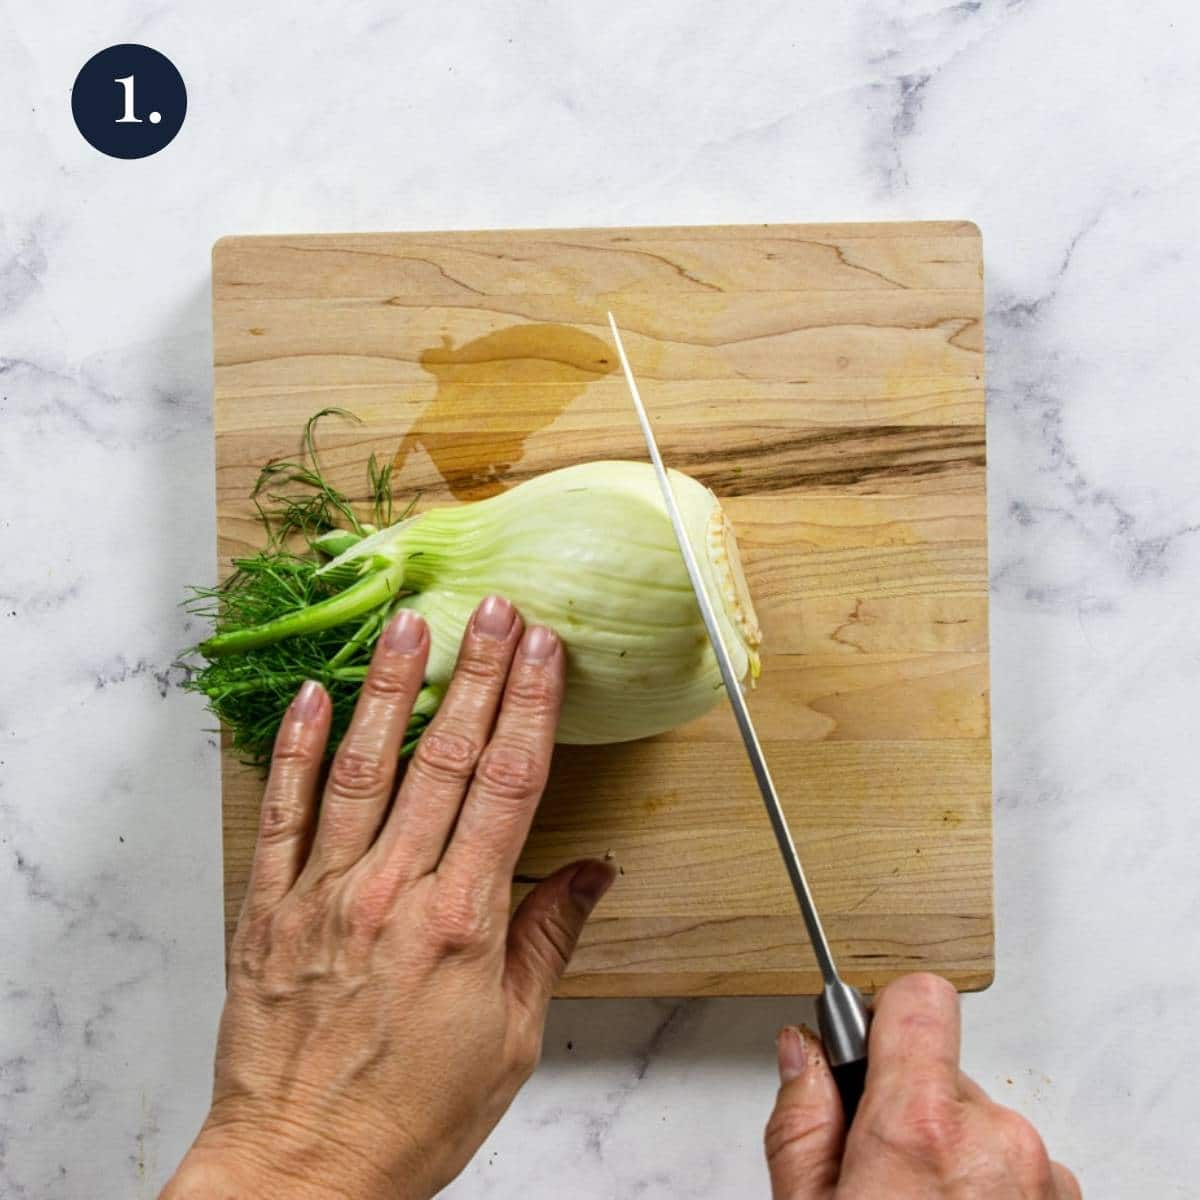 trimming the root end of fresh fennel